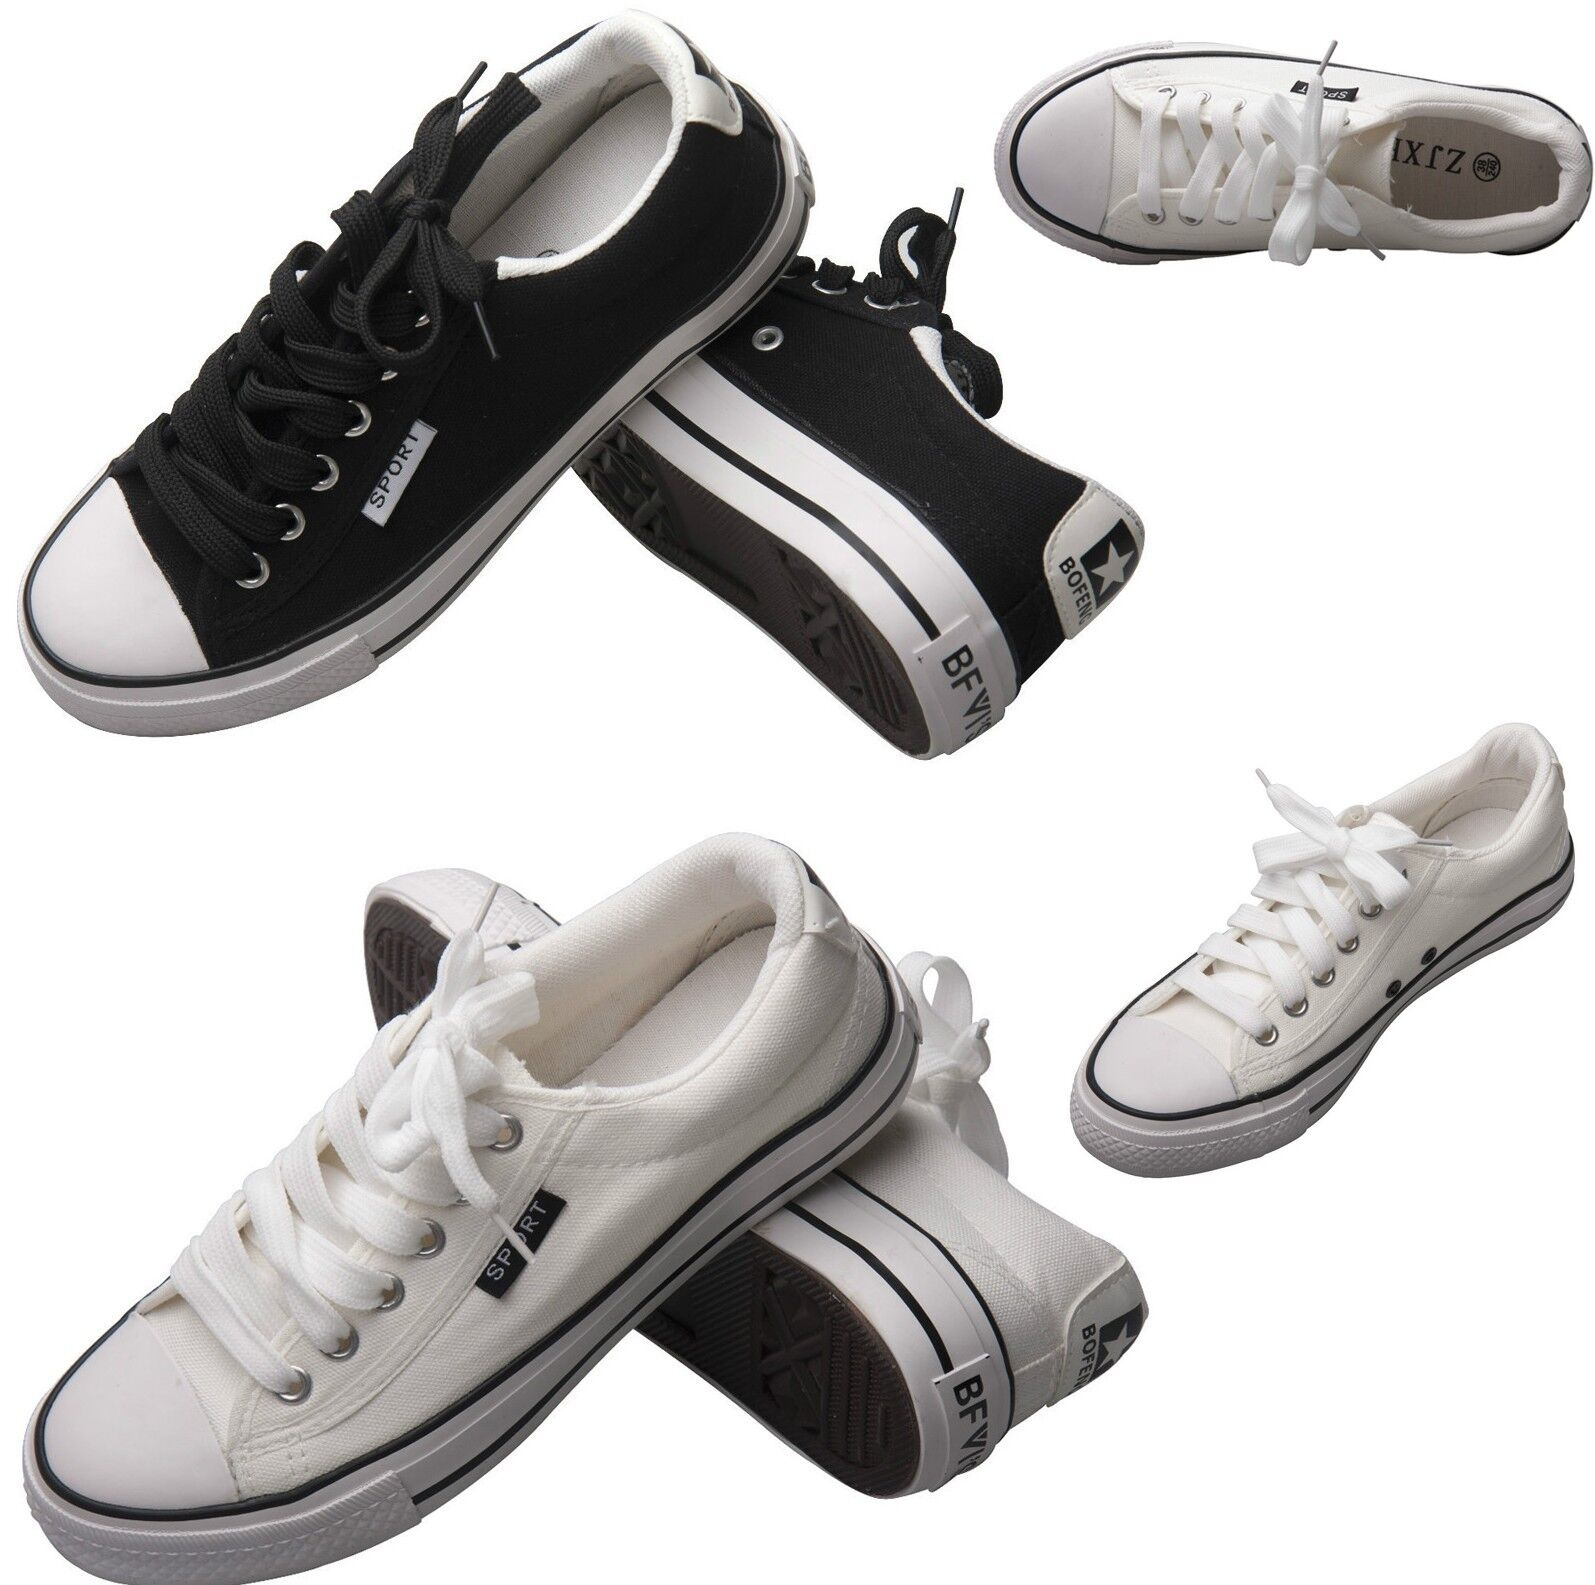 New Men's Shoes Canvas Athletic Sneakers Man Lace up Casual Low Top Oxford Heel